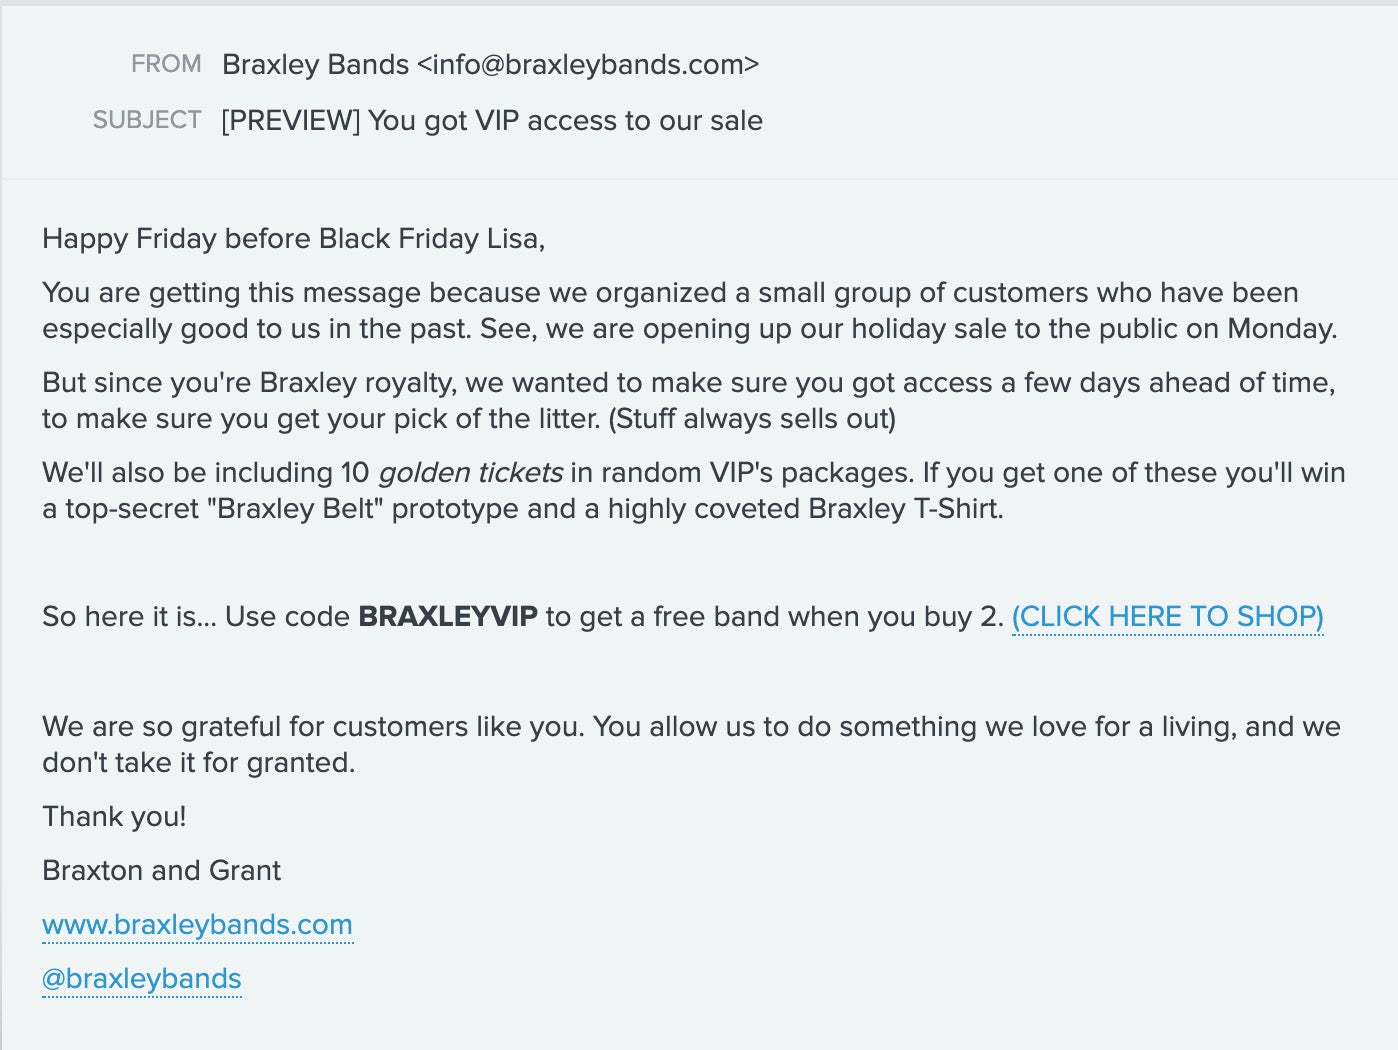 A plain text email from Braxley Bands that was sent to their loyal customers, offering them an early Black Friday deal